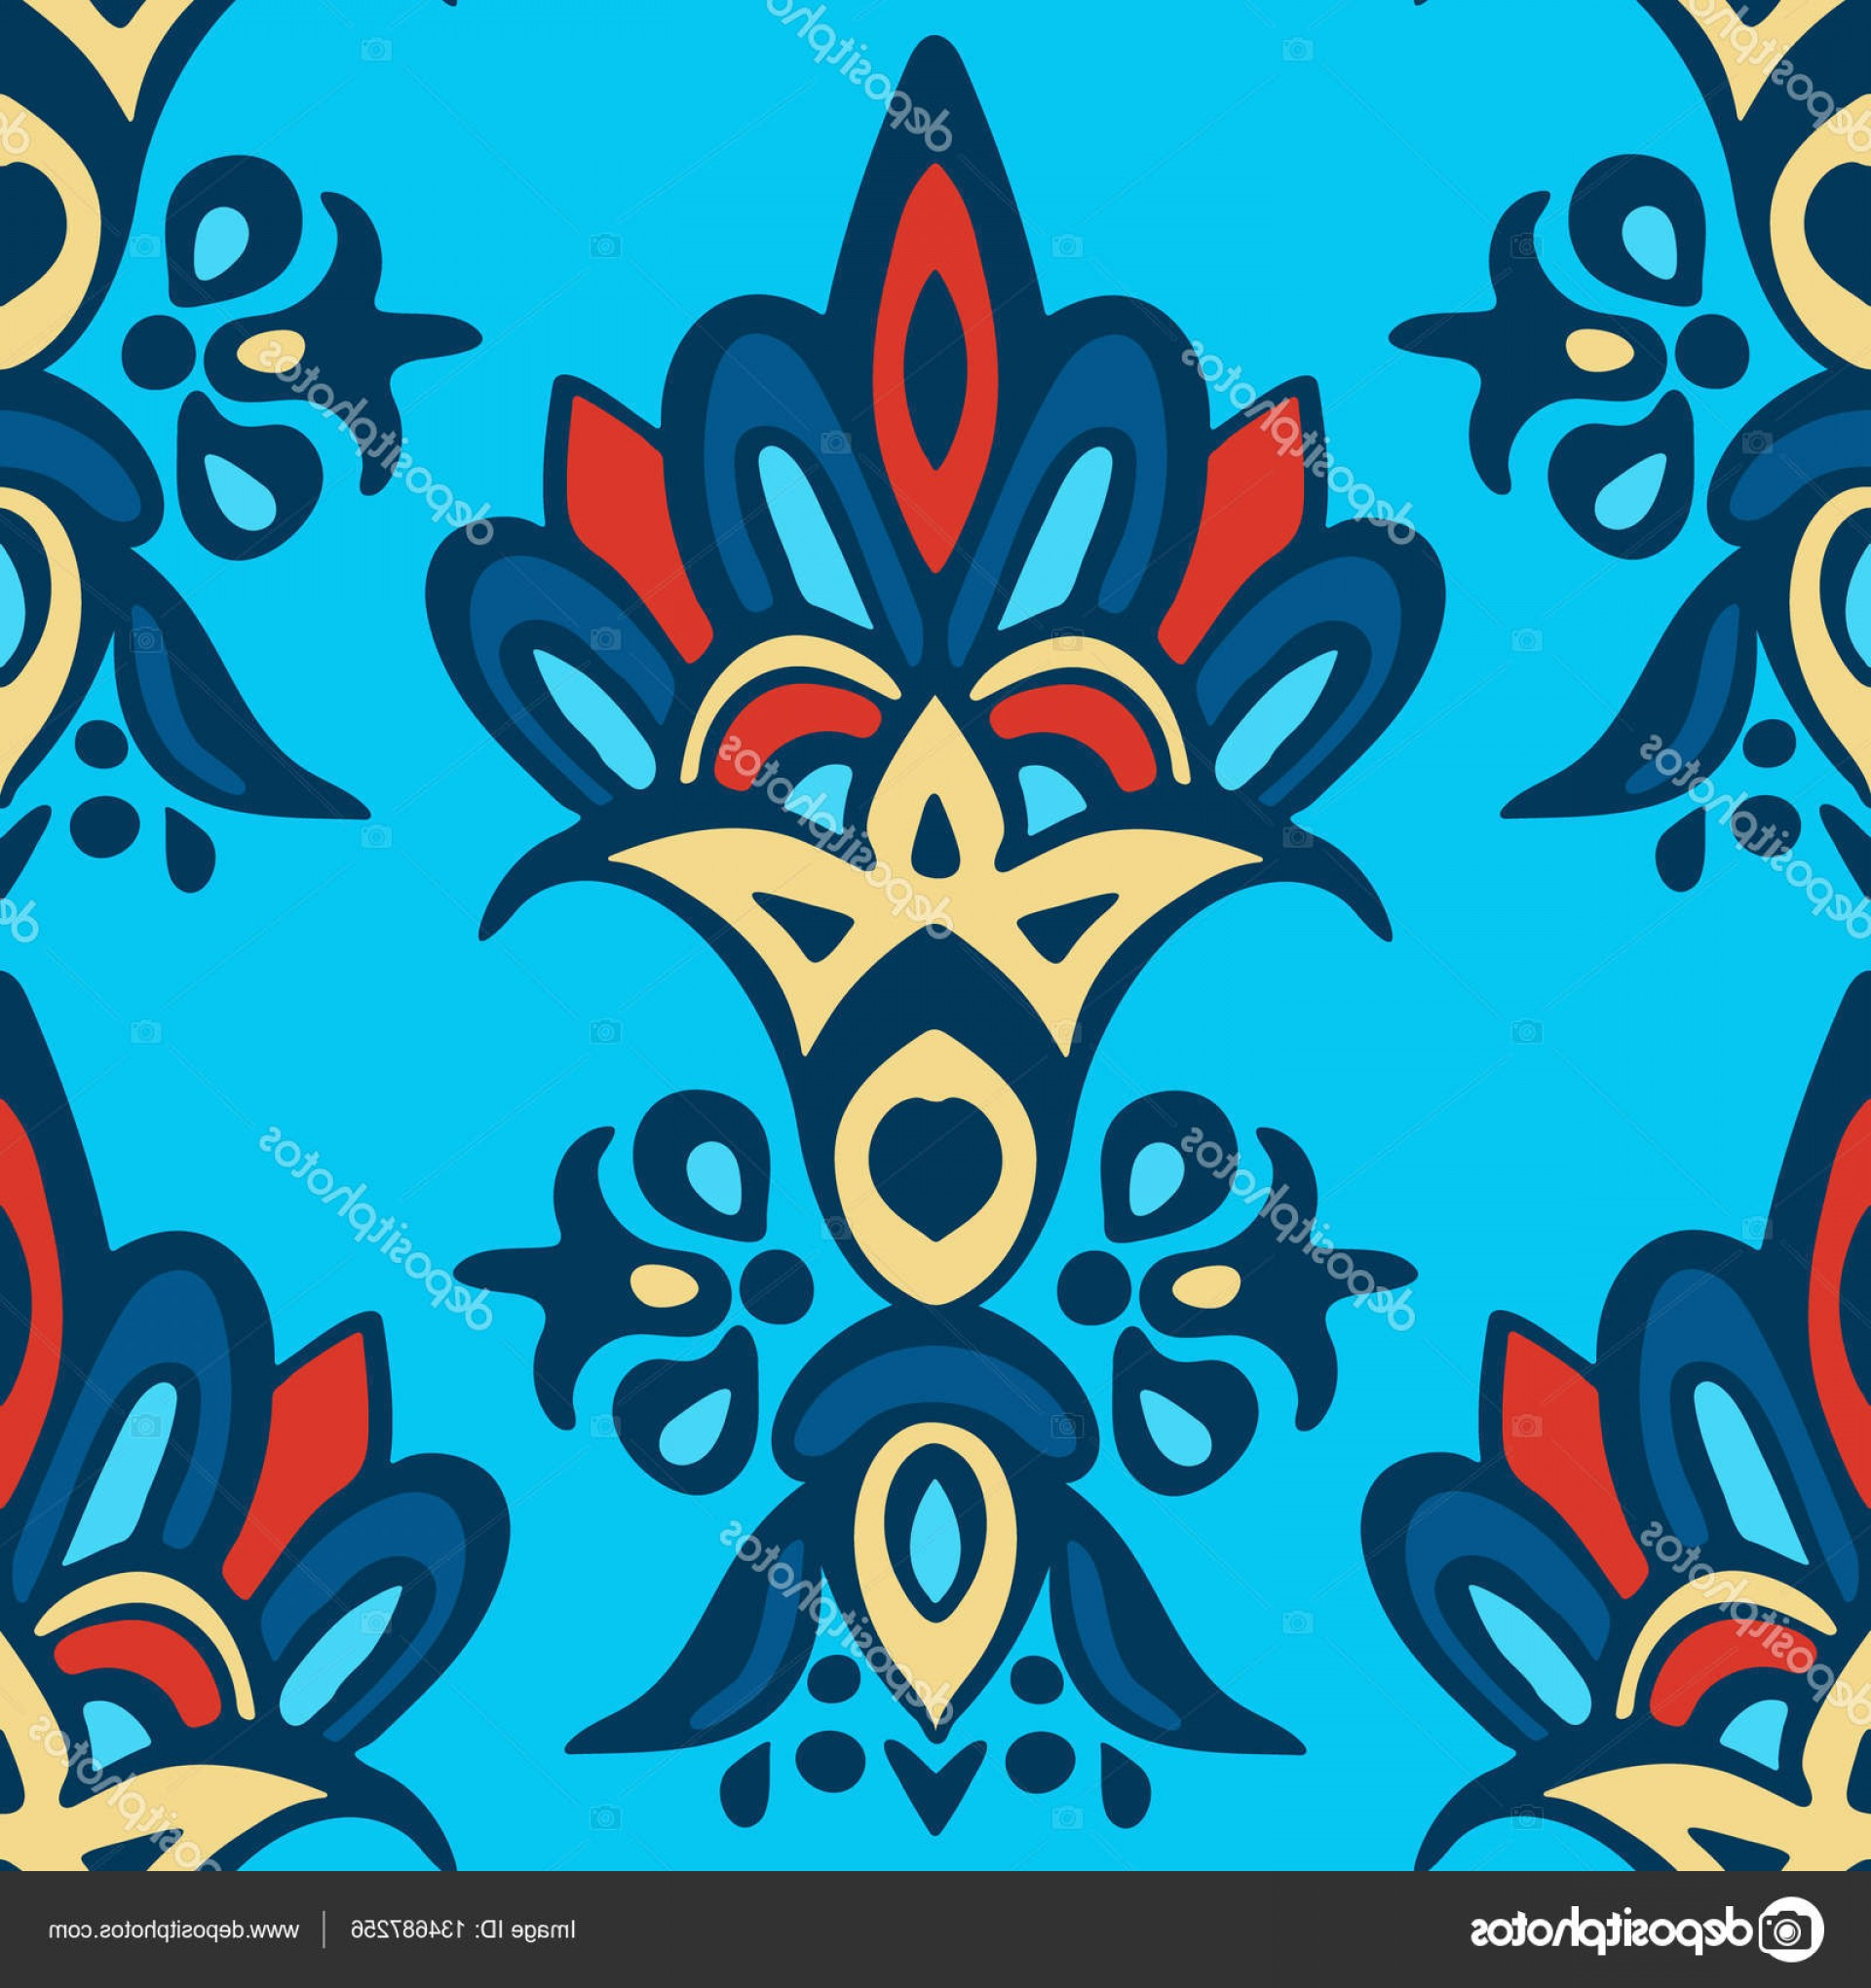 Aqua Victorian Medallions Vectors: Stock Illustration Damask Floral Medallion Vector Classic